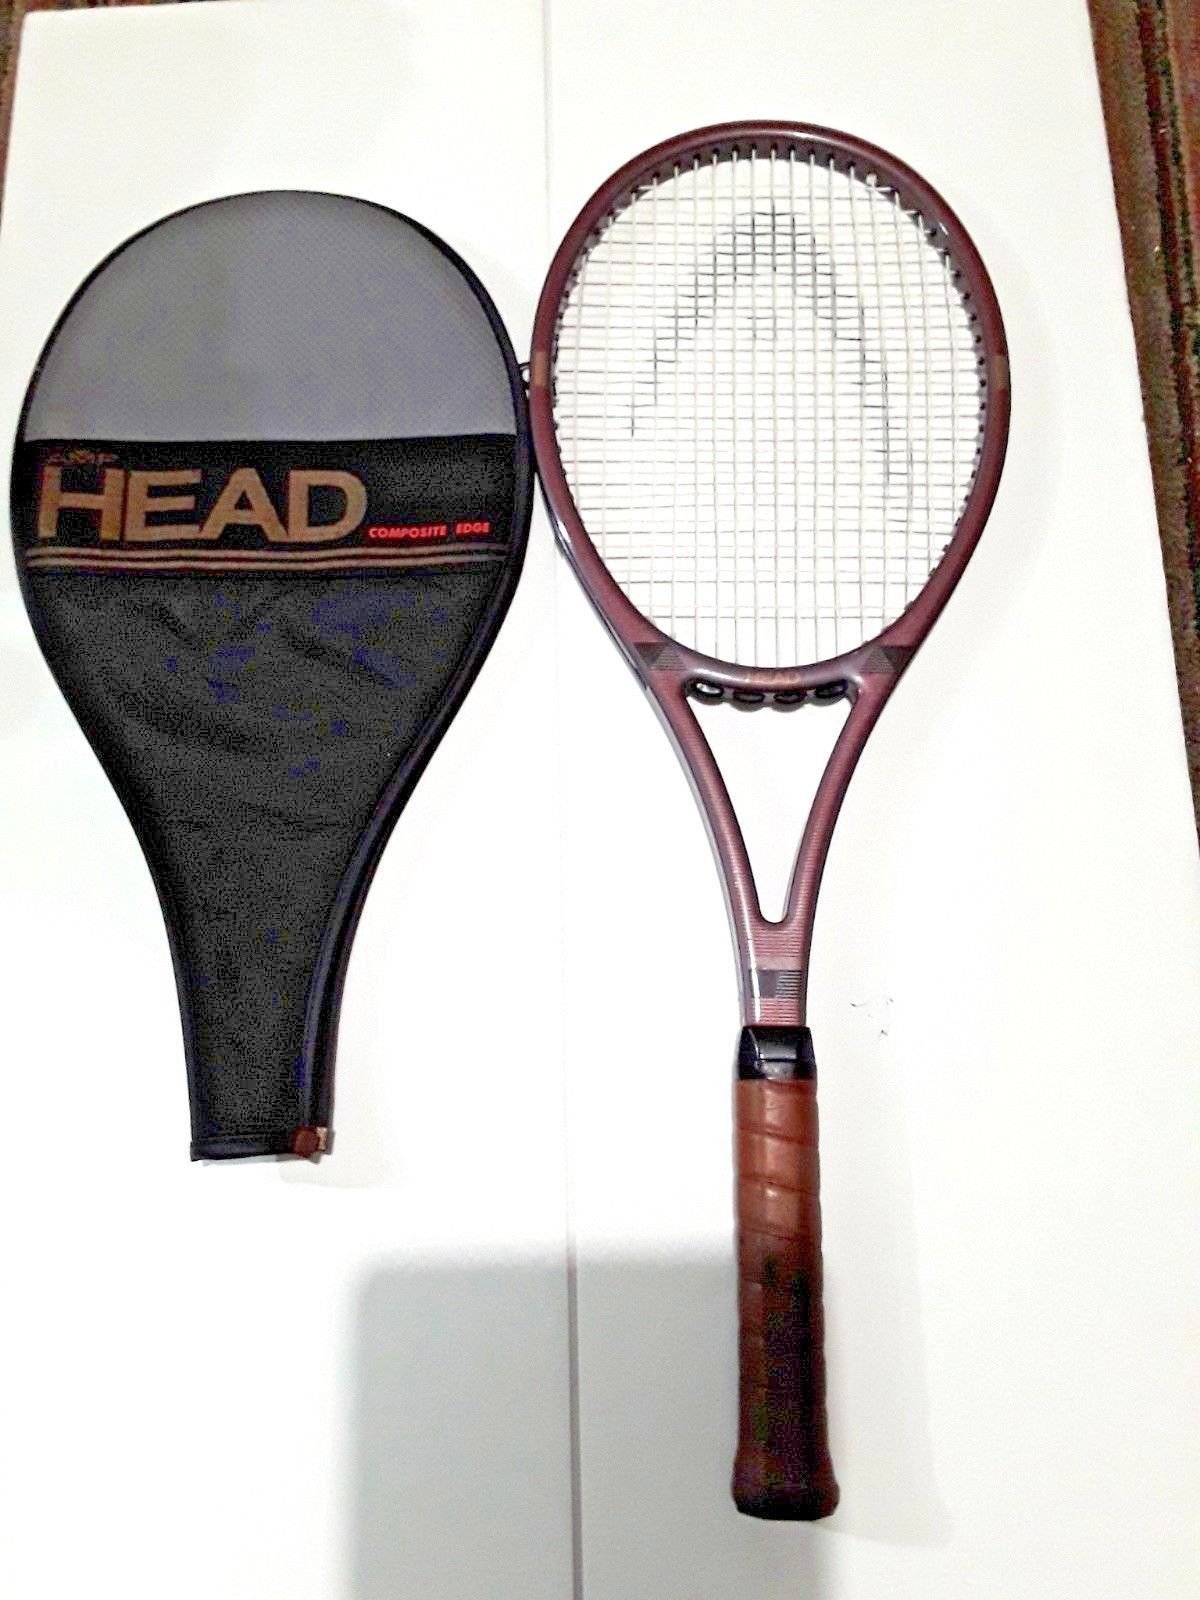 Head Graphite Composite Edge 81 5 Head Tennis Racquet Vintage Nice By Fchoicevintage On Etsy Etsy Tennis Tennisracquet Tennis Racquet Head Tennis Racquets